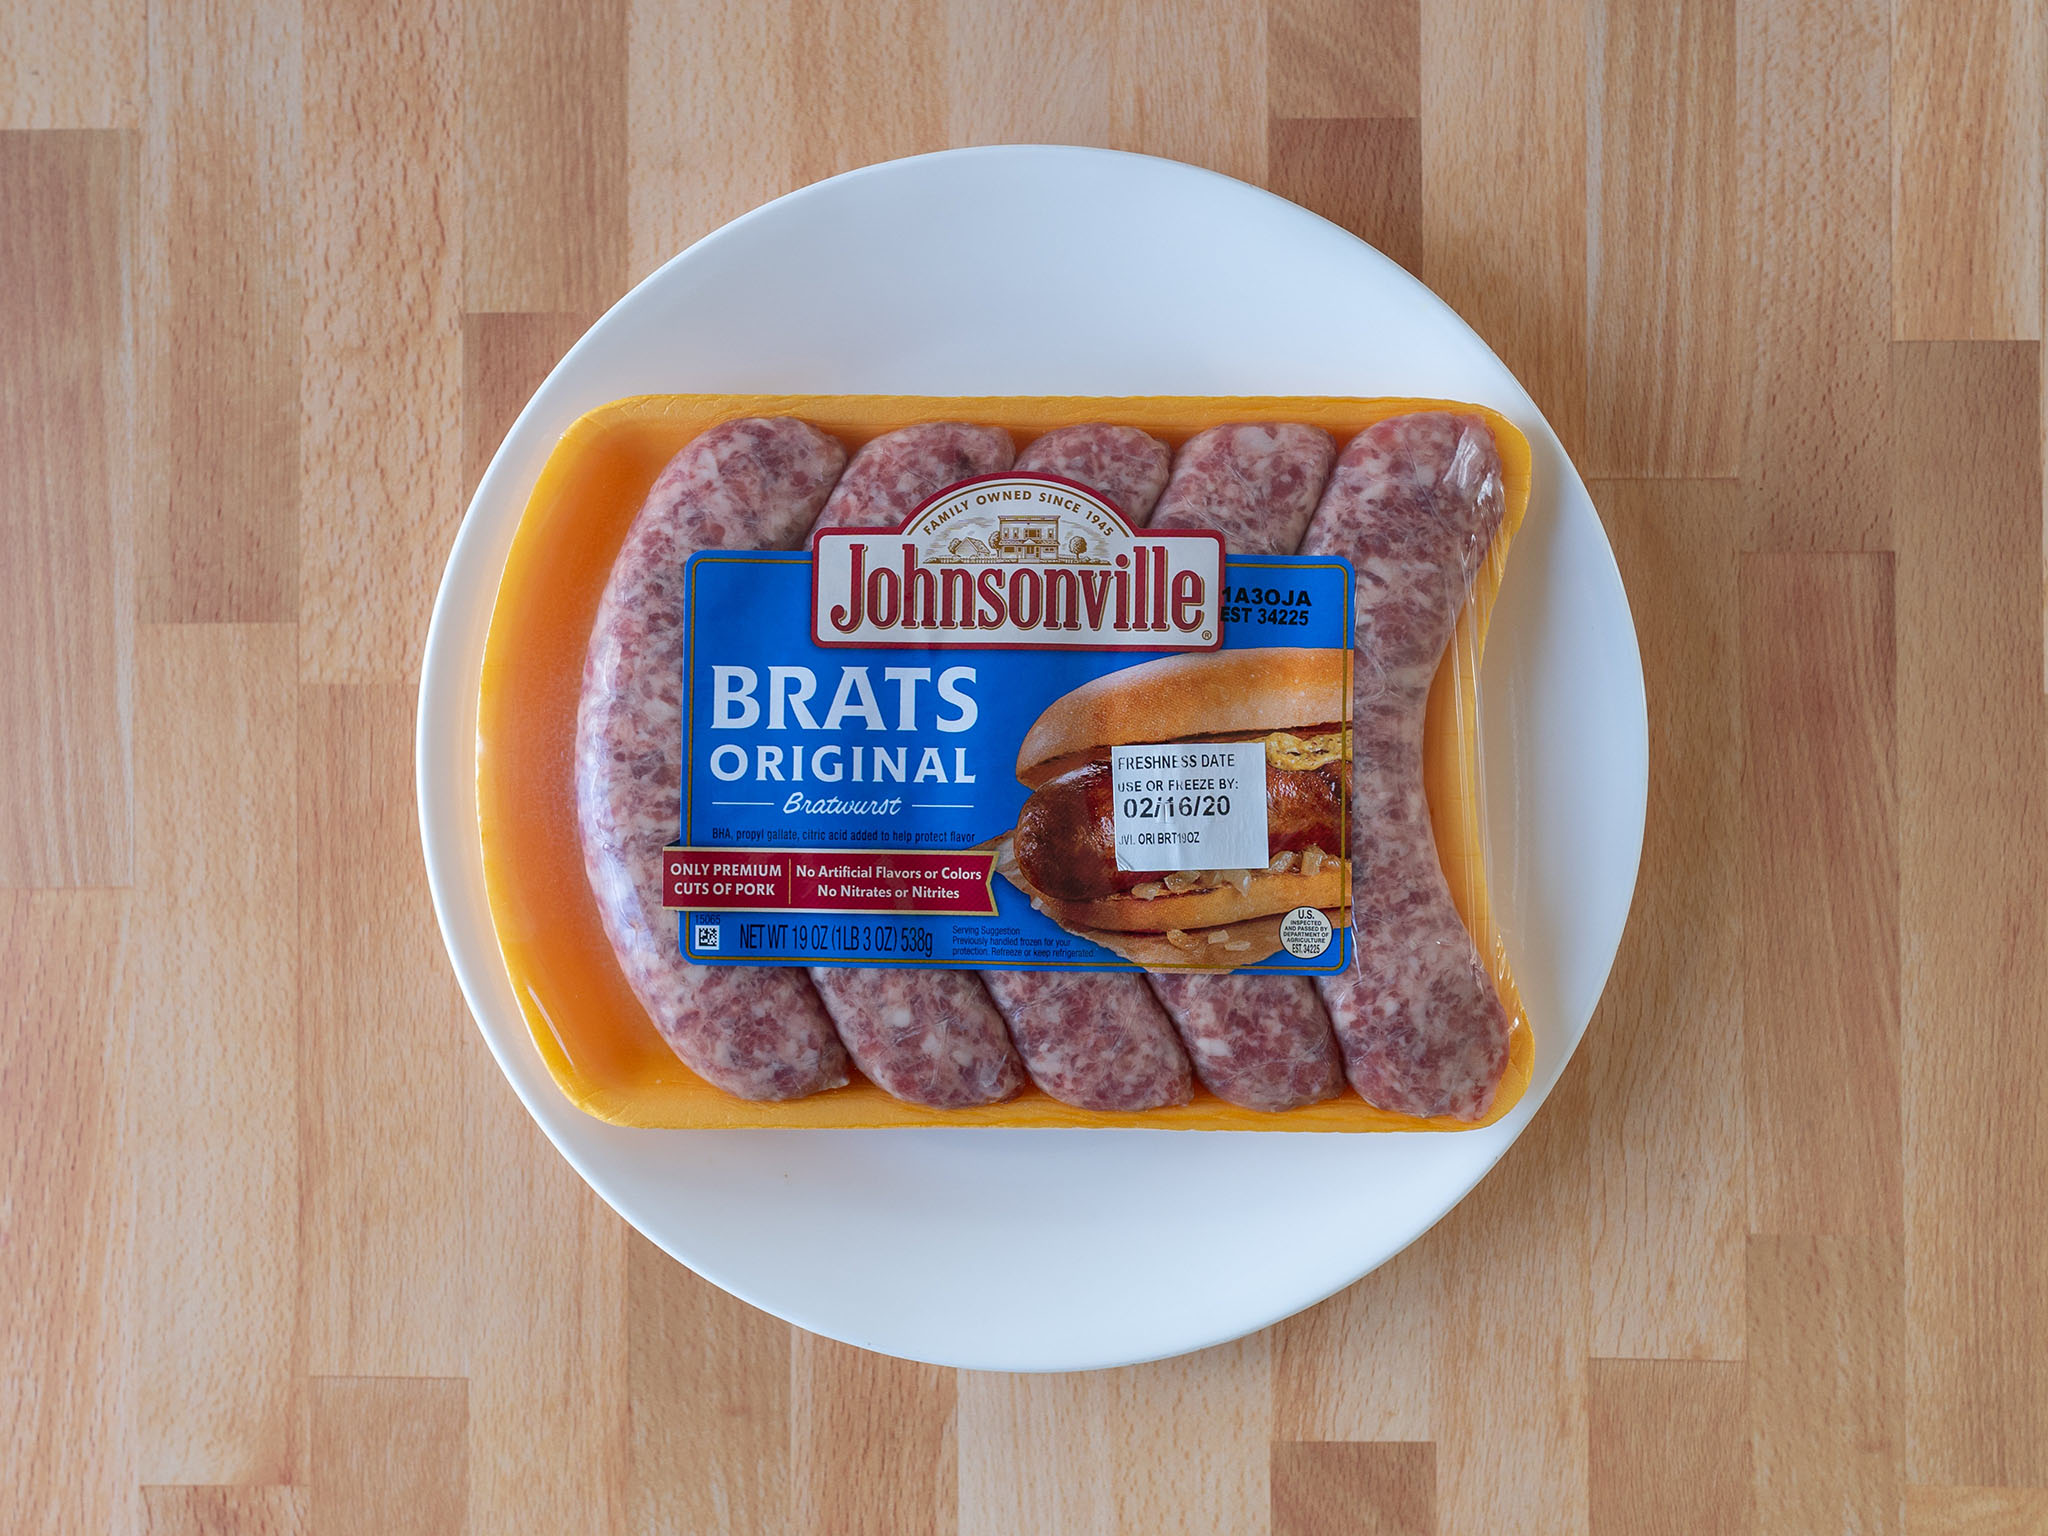 Johnsonville Brats Original Bratwurst